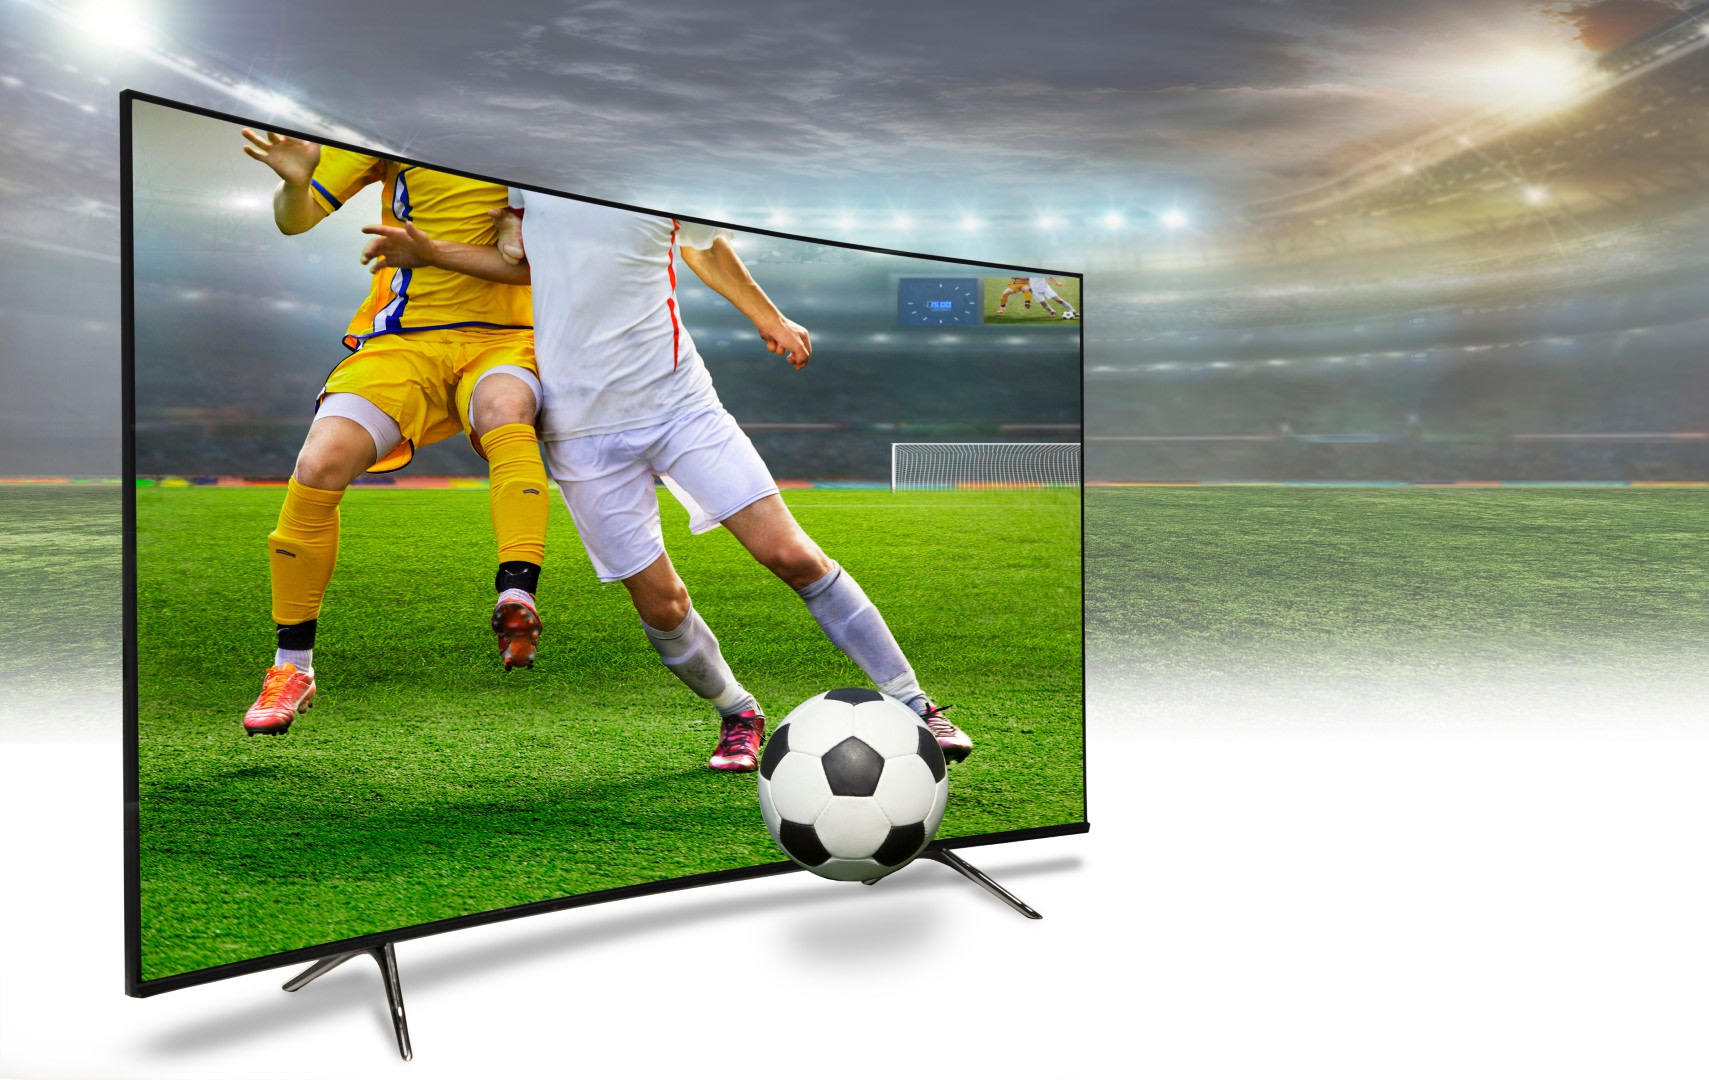 An image related to Top LG HDR TVs